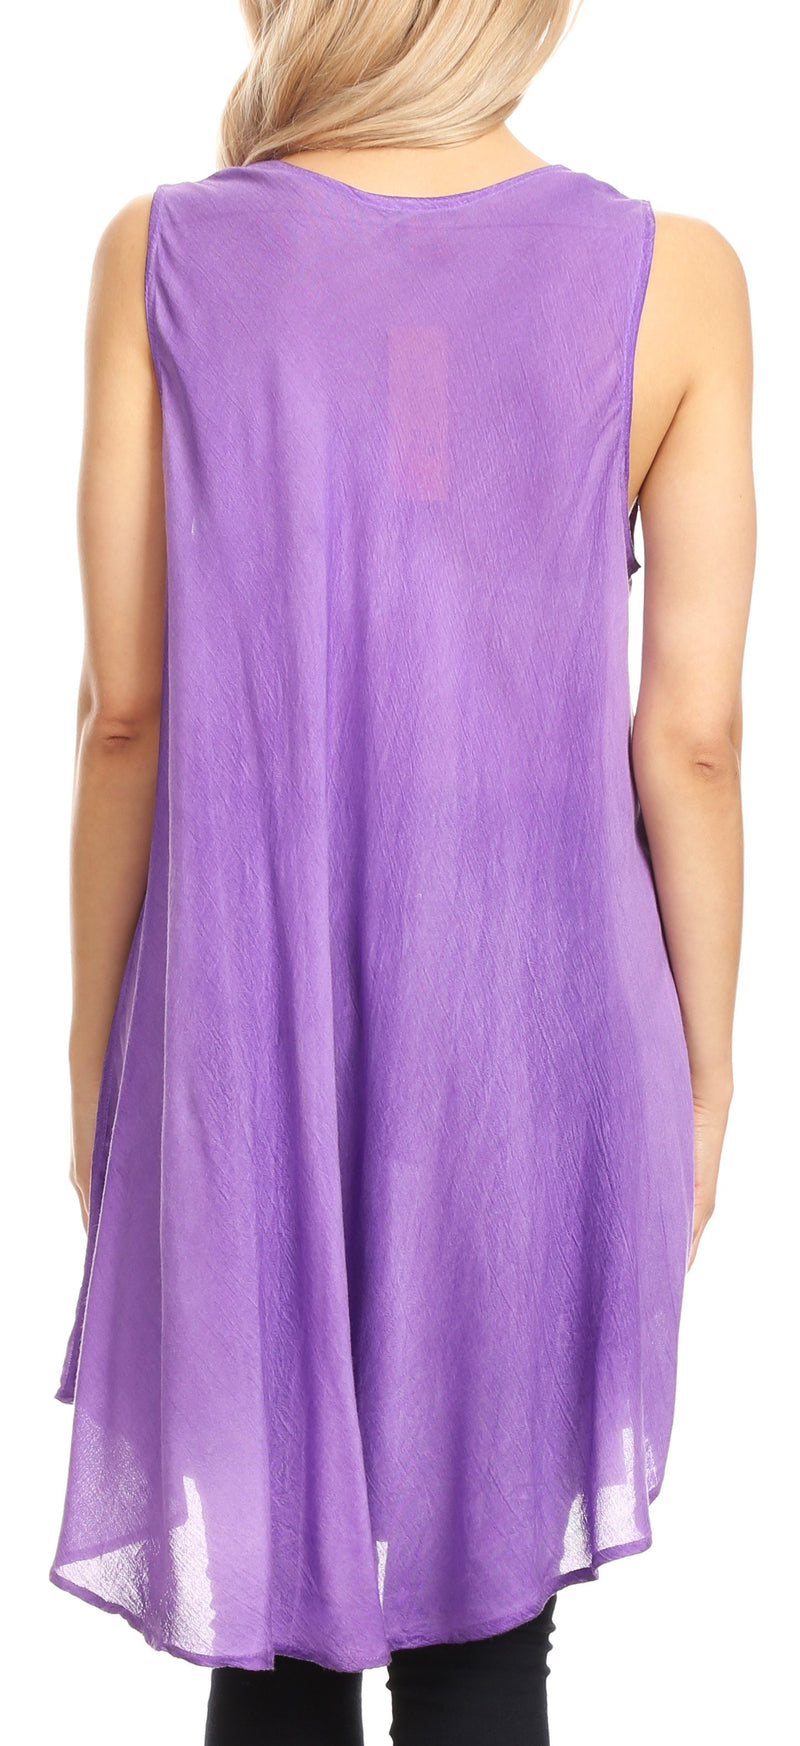 Sakkas Lana Ombre Tie Dye Embroidered Tank Style Long Summer Top | Cover Up